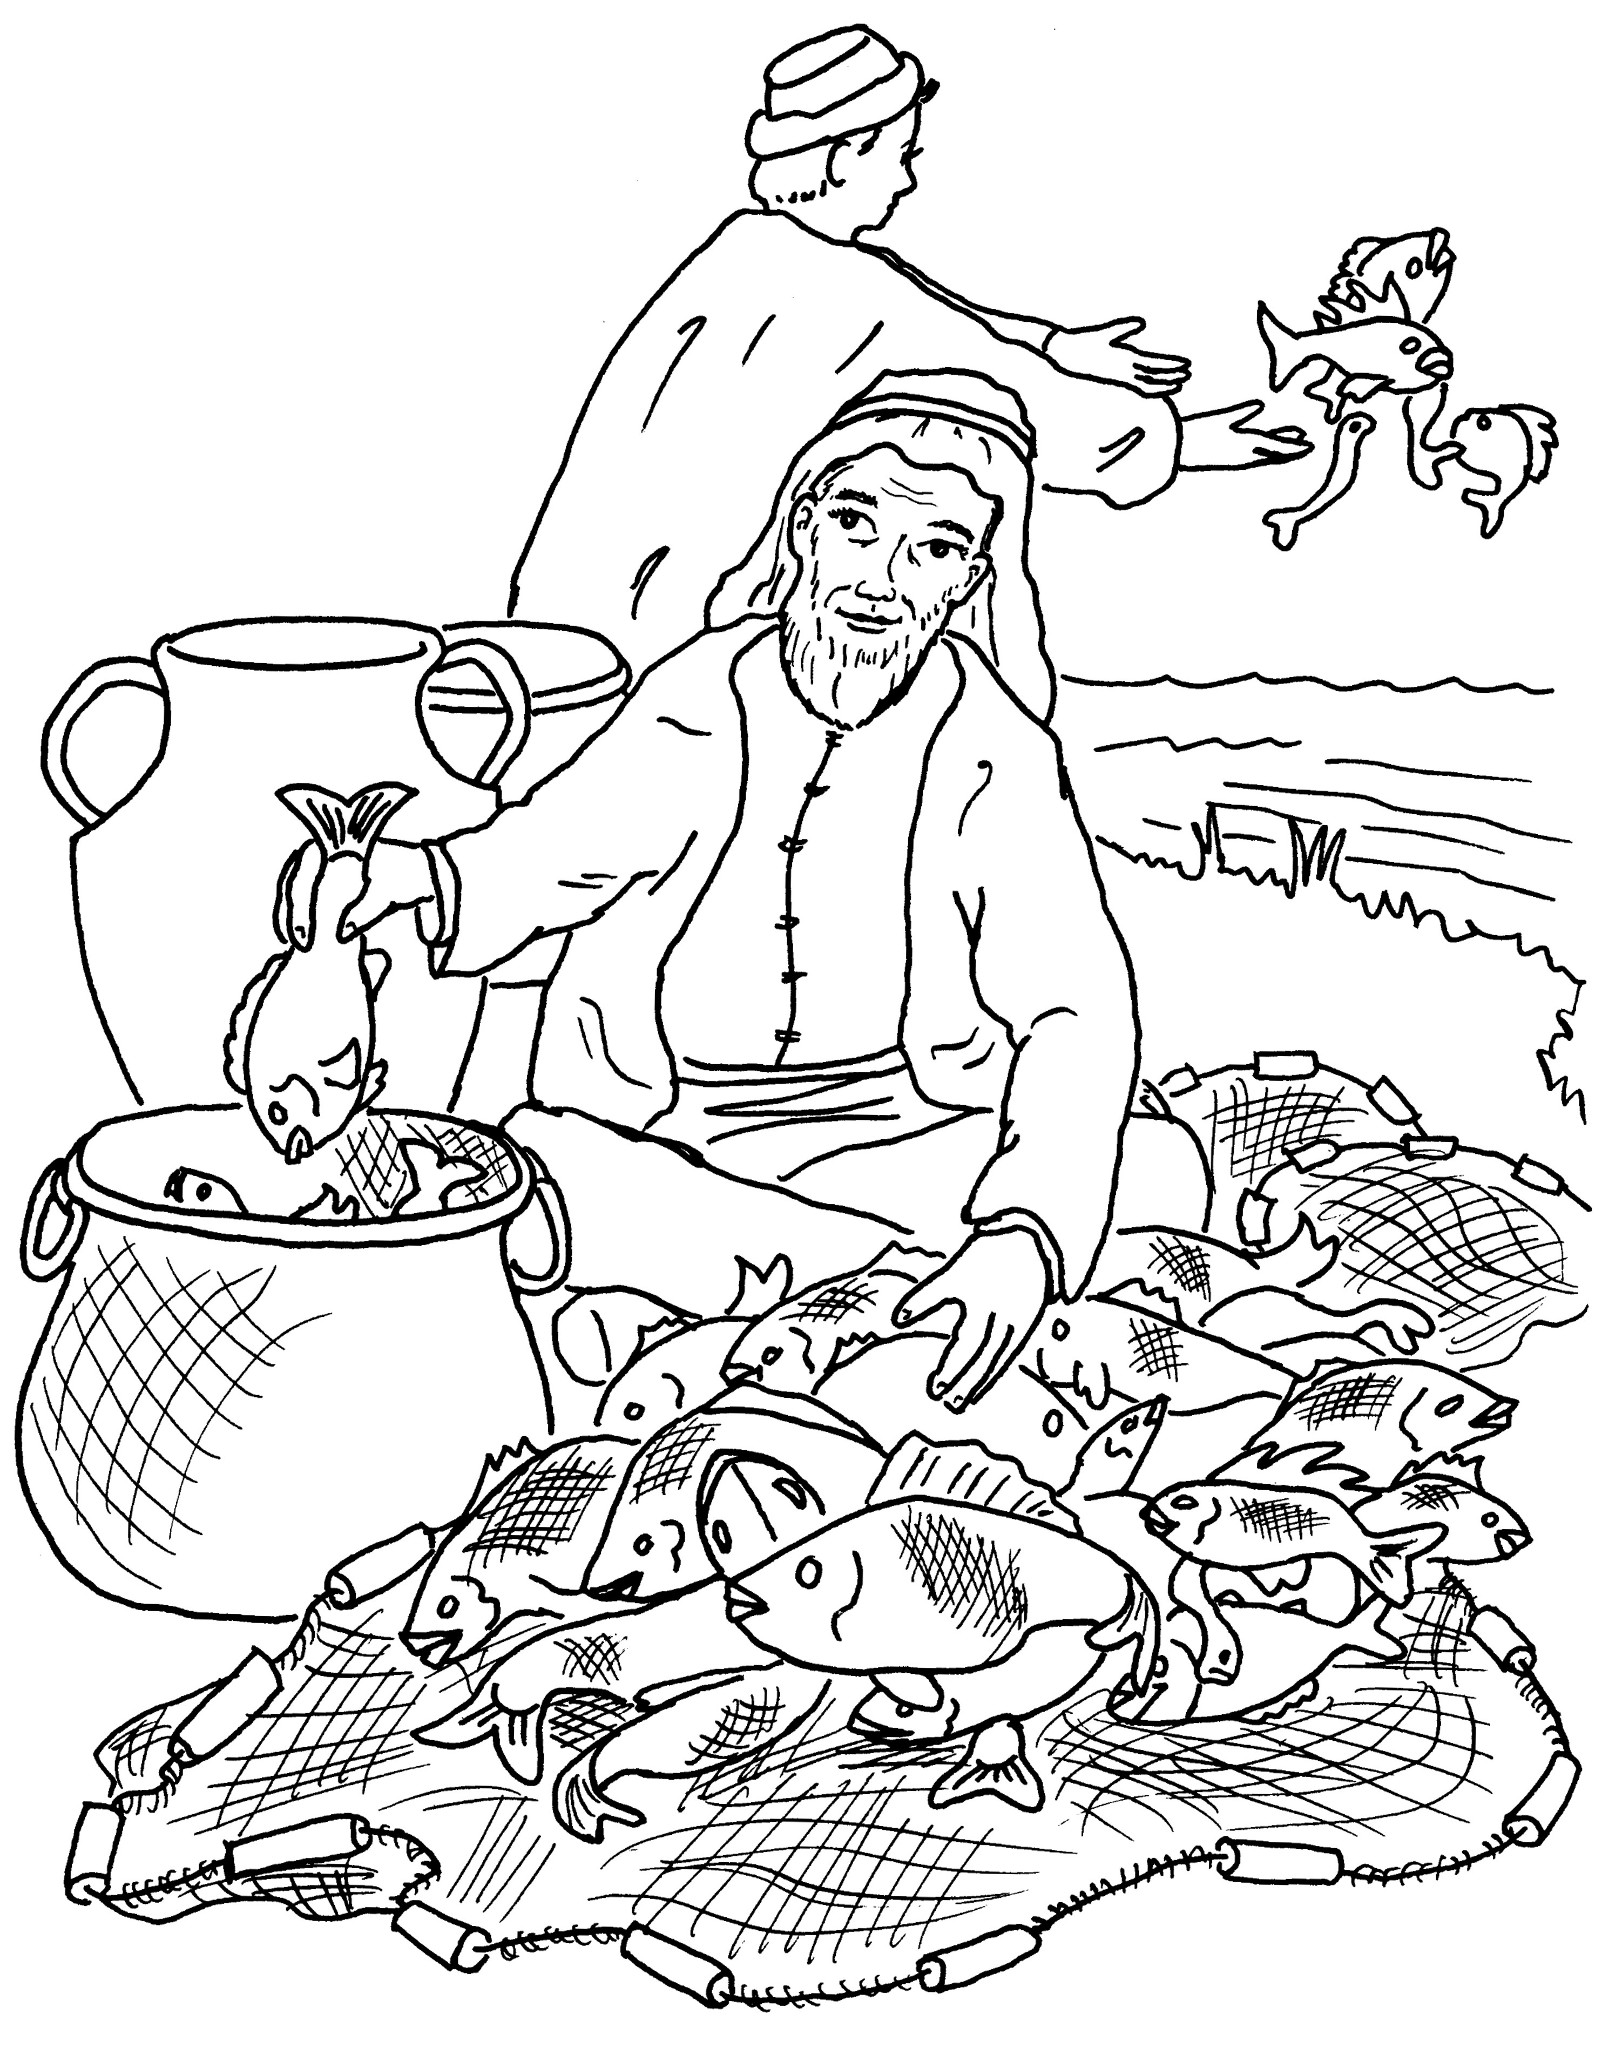 parables coloring pages - photo#30